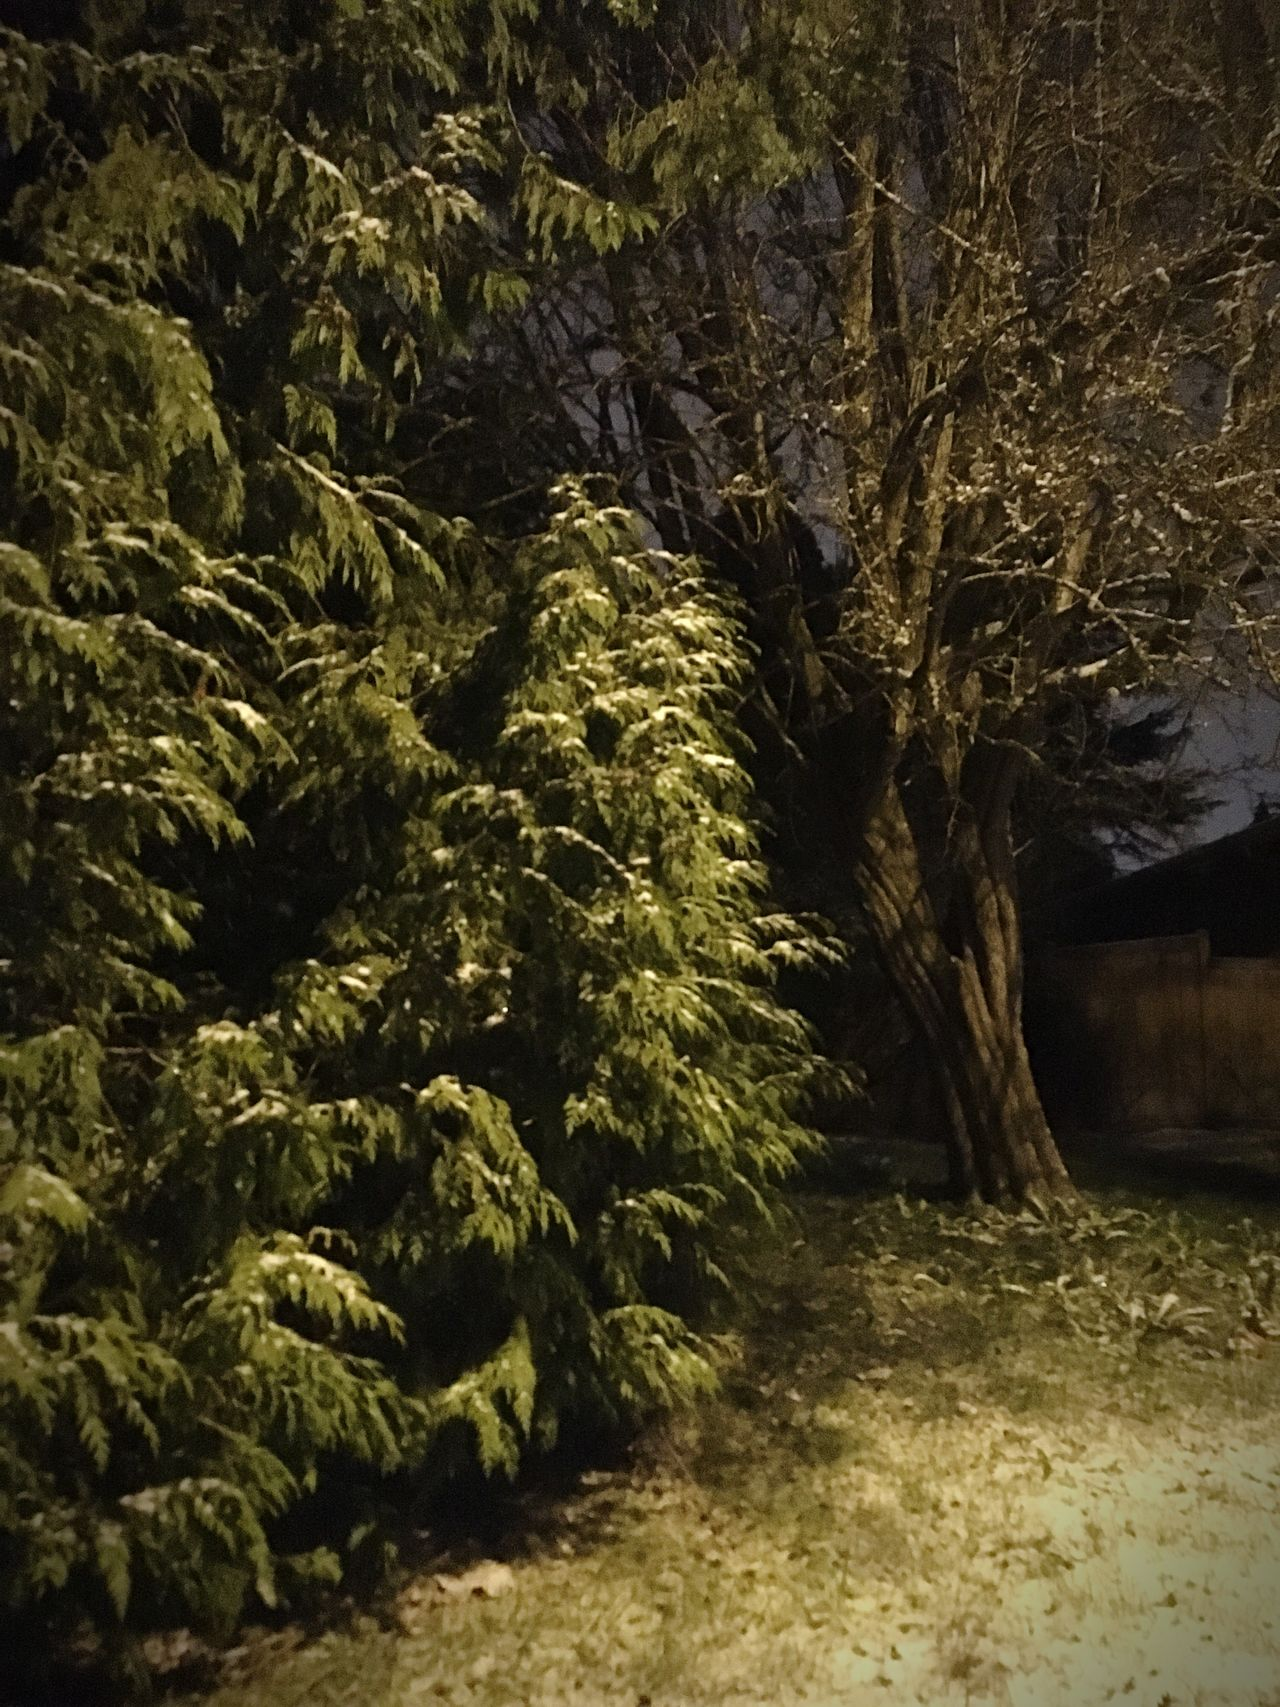 Nature No People Outdoors Tree Illuminated Treethugger Naturerox Winter